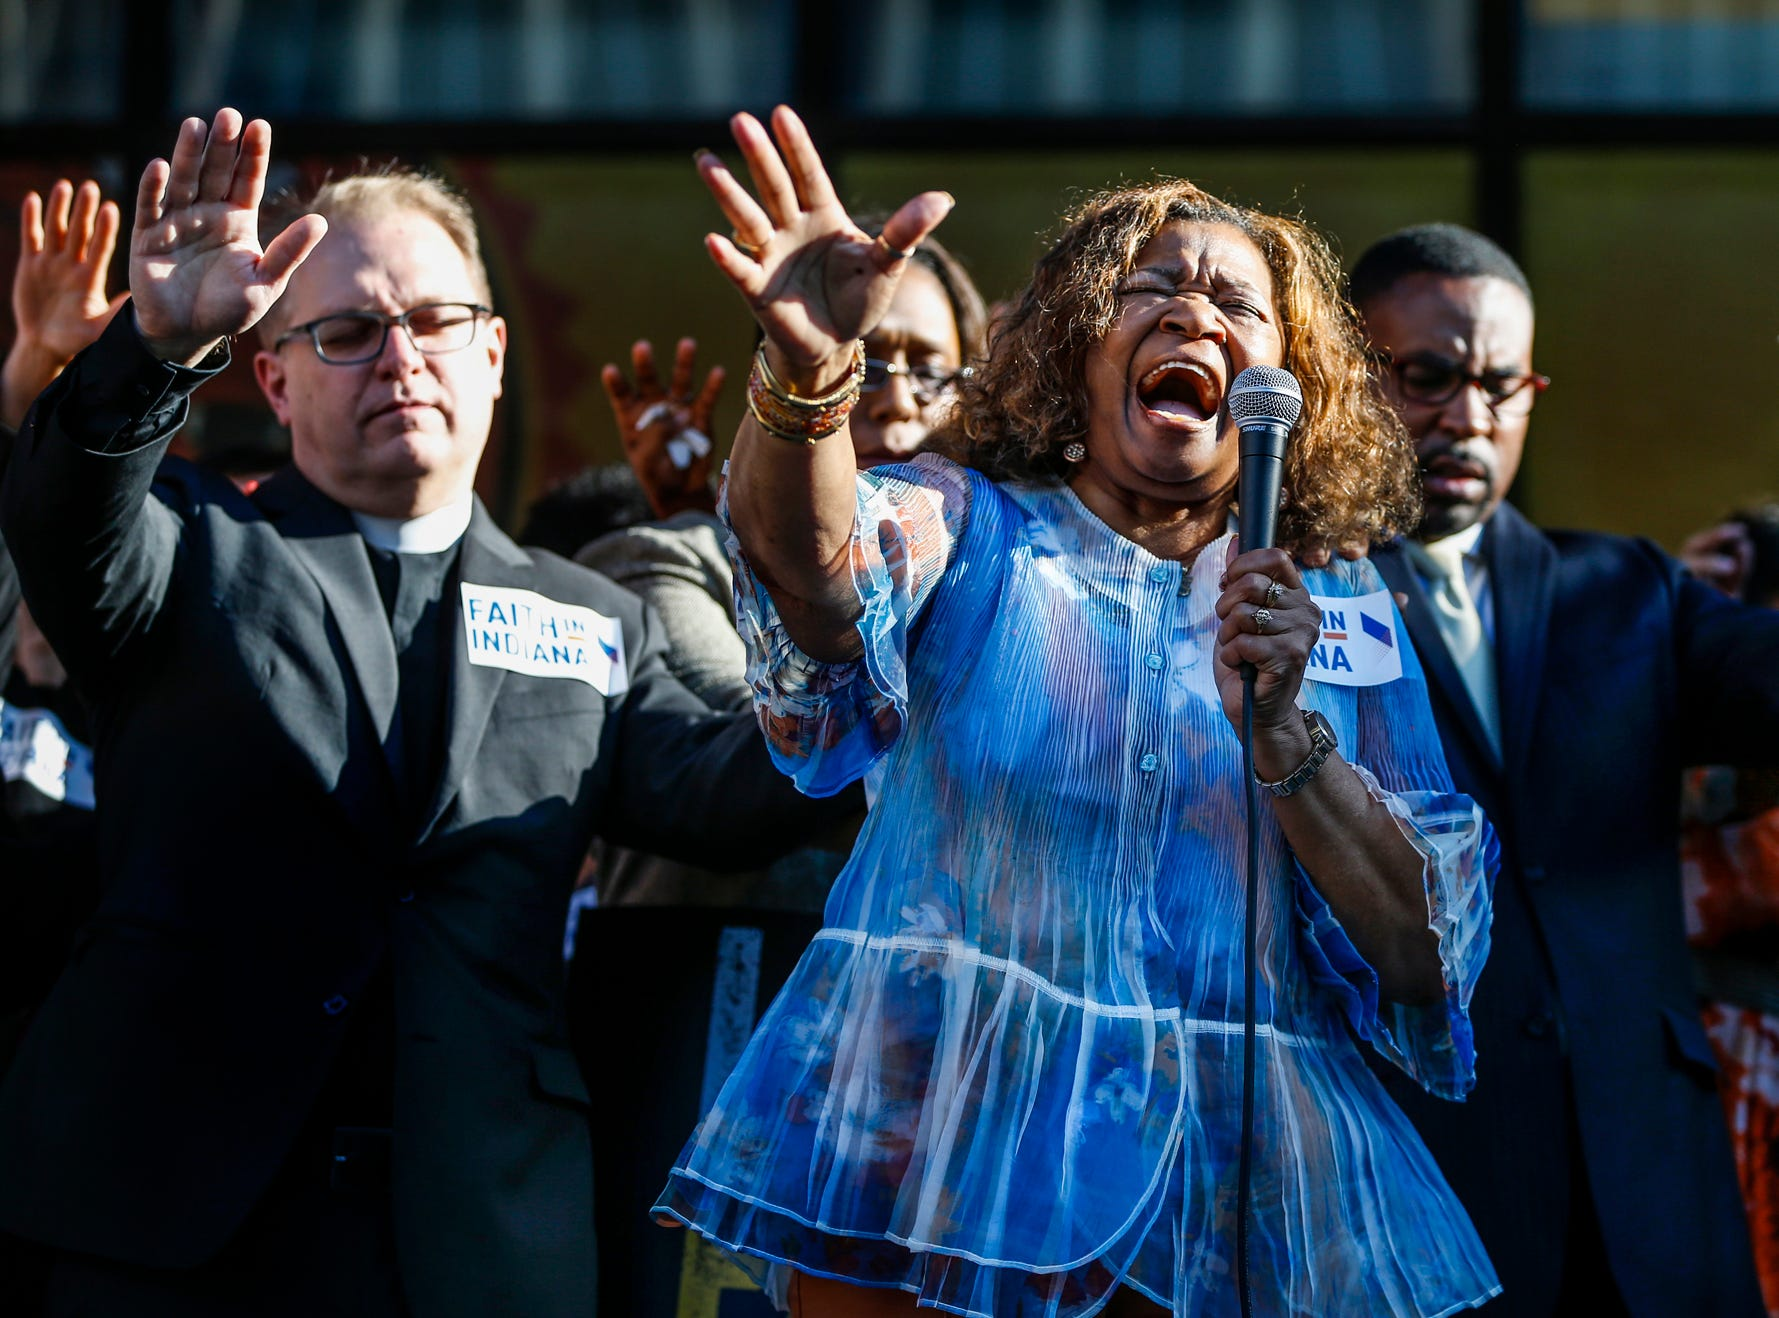 Sharon Trotter, associate pastor at Promise Land Christian Community Church, prays alongside local clergy, community leaders and activists before the final day of the Civilian Police Merit Board hearing in Indianapolis, on Thursday, May 10, 2018. The seven-member board will decide whether to accept the police chief's recommendation to fire the two officers, Michal P. Dinnsen and Carlton J. Howard.  Dinnsen and Howard shot and killed Aaron Bailey on June 29, after Bailey fled a traffic stop. The officers said Bailey ignored their commands to show his hands and instead reached into the car's center console, where they thought he sought a gun. No weapon was found.